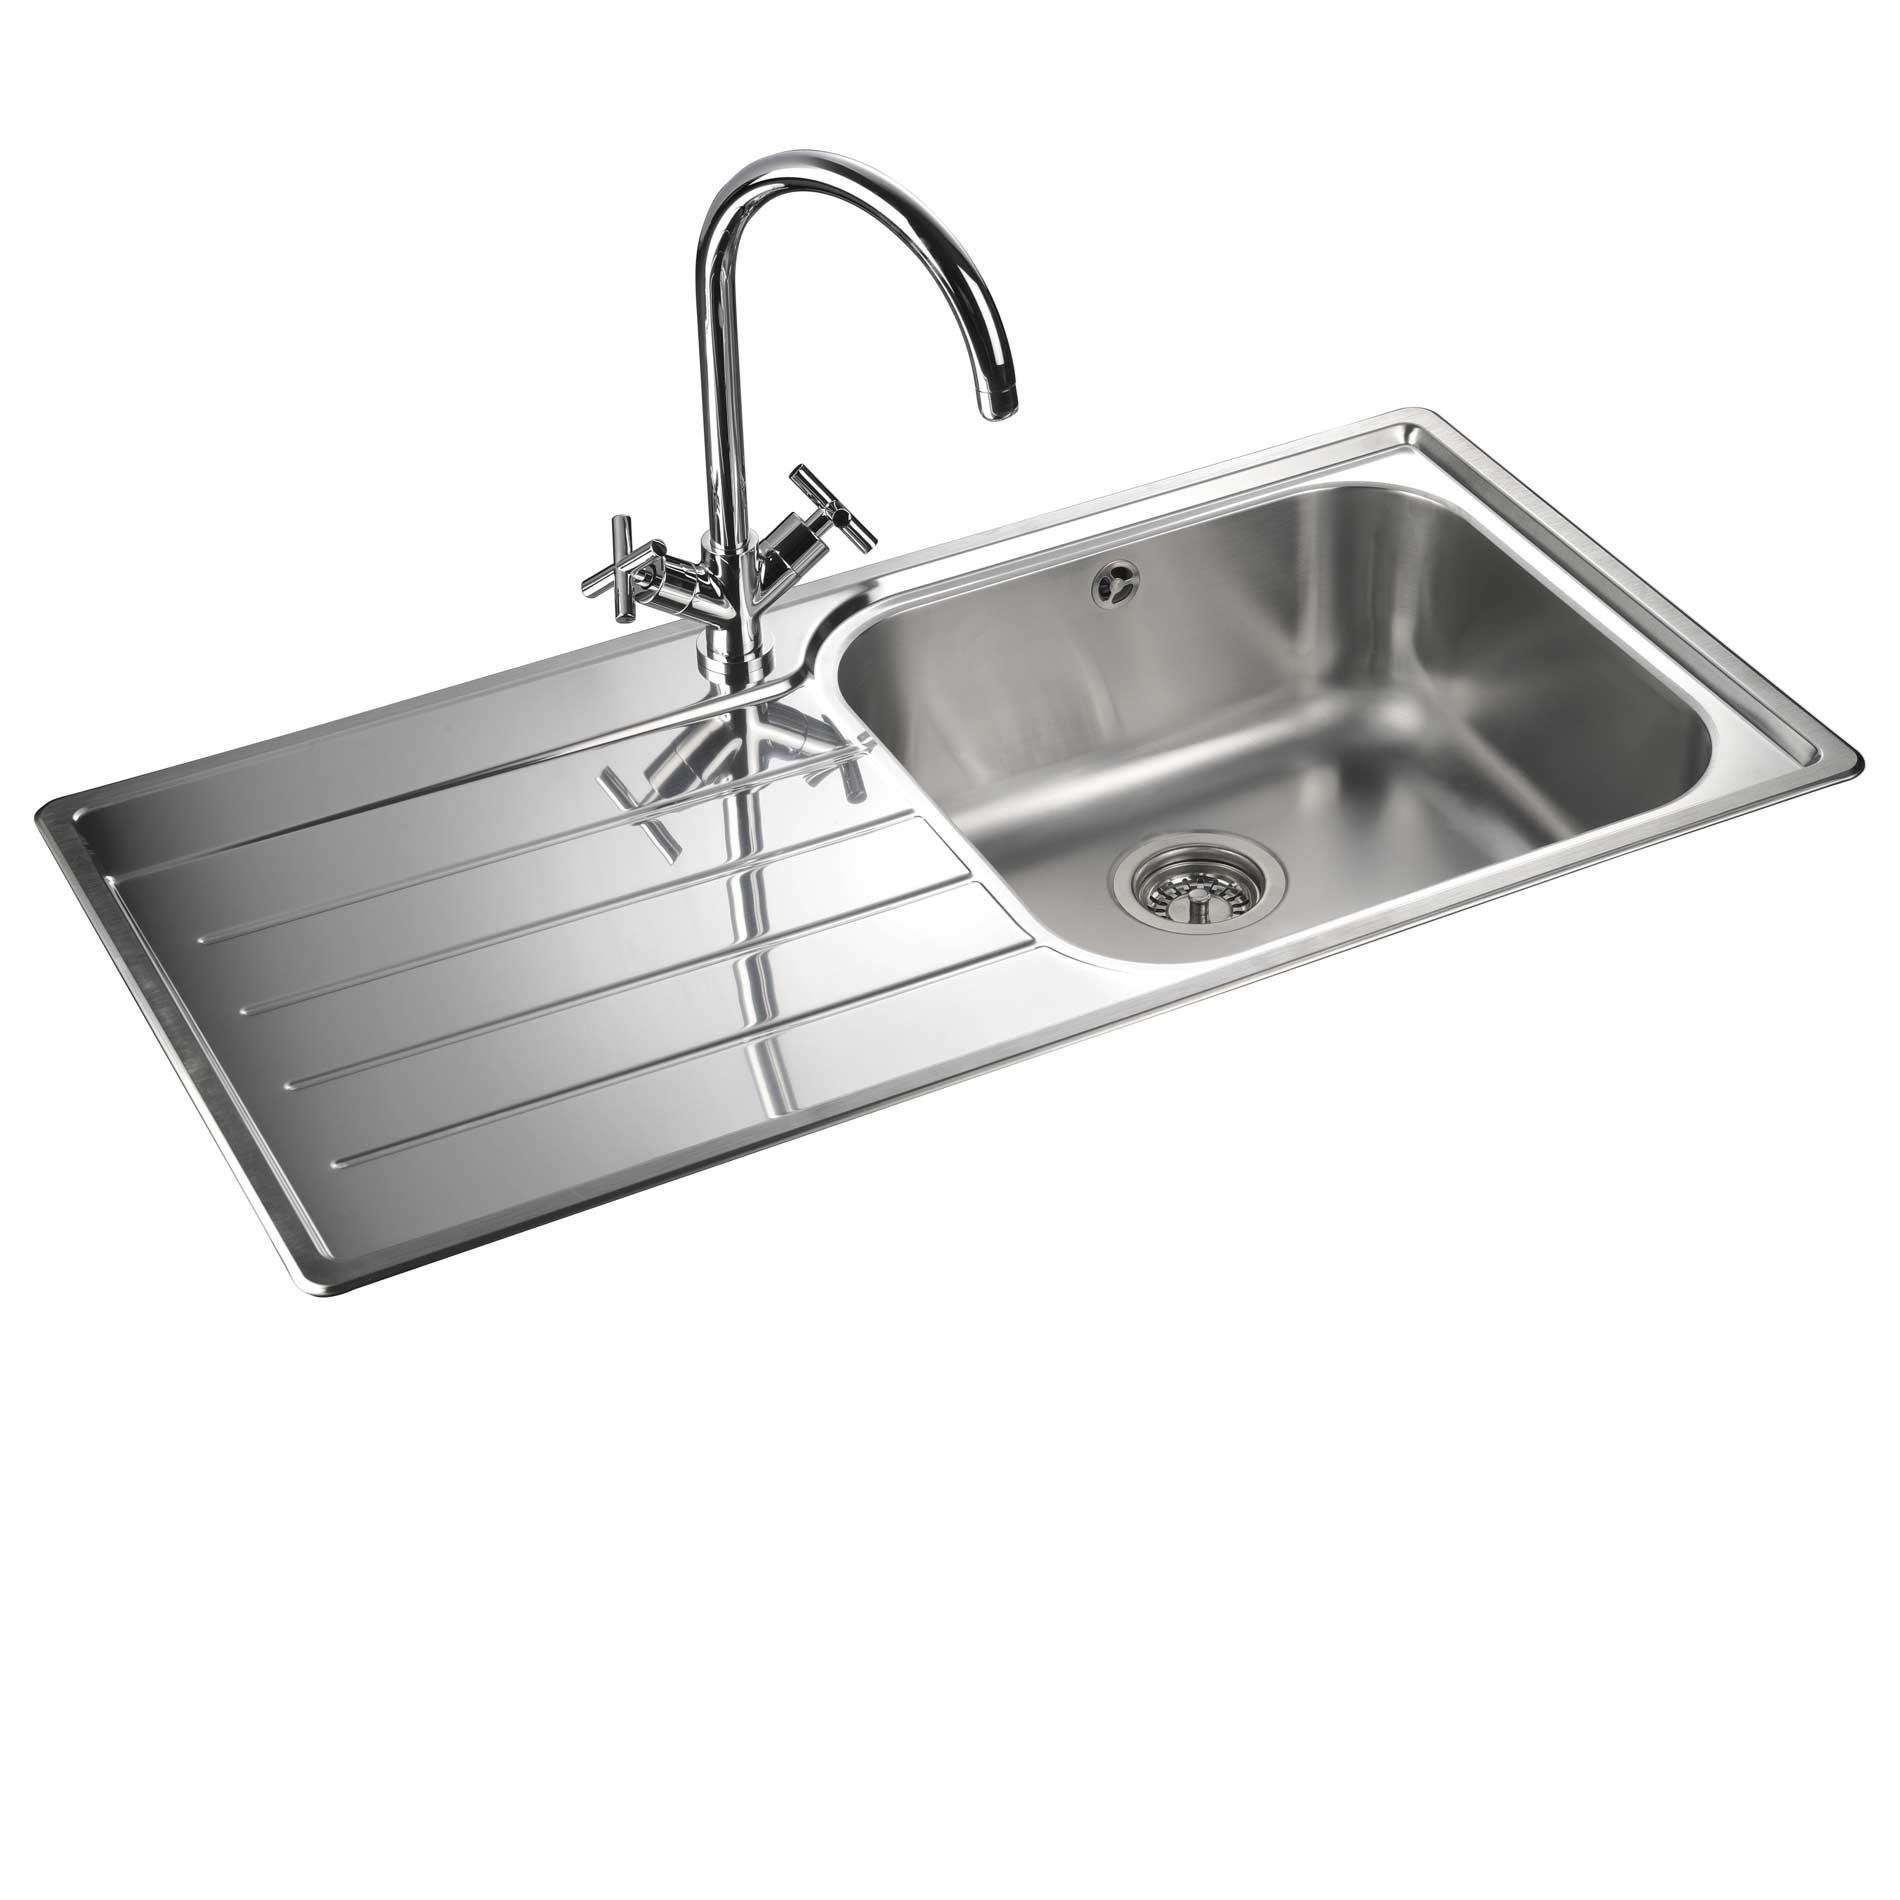 inch home garden stainless soundproofing product noisedefend farmhouse kitchen sink sinks steel with single bowl kraus